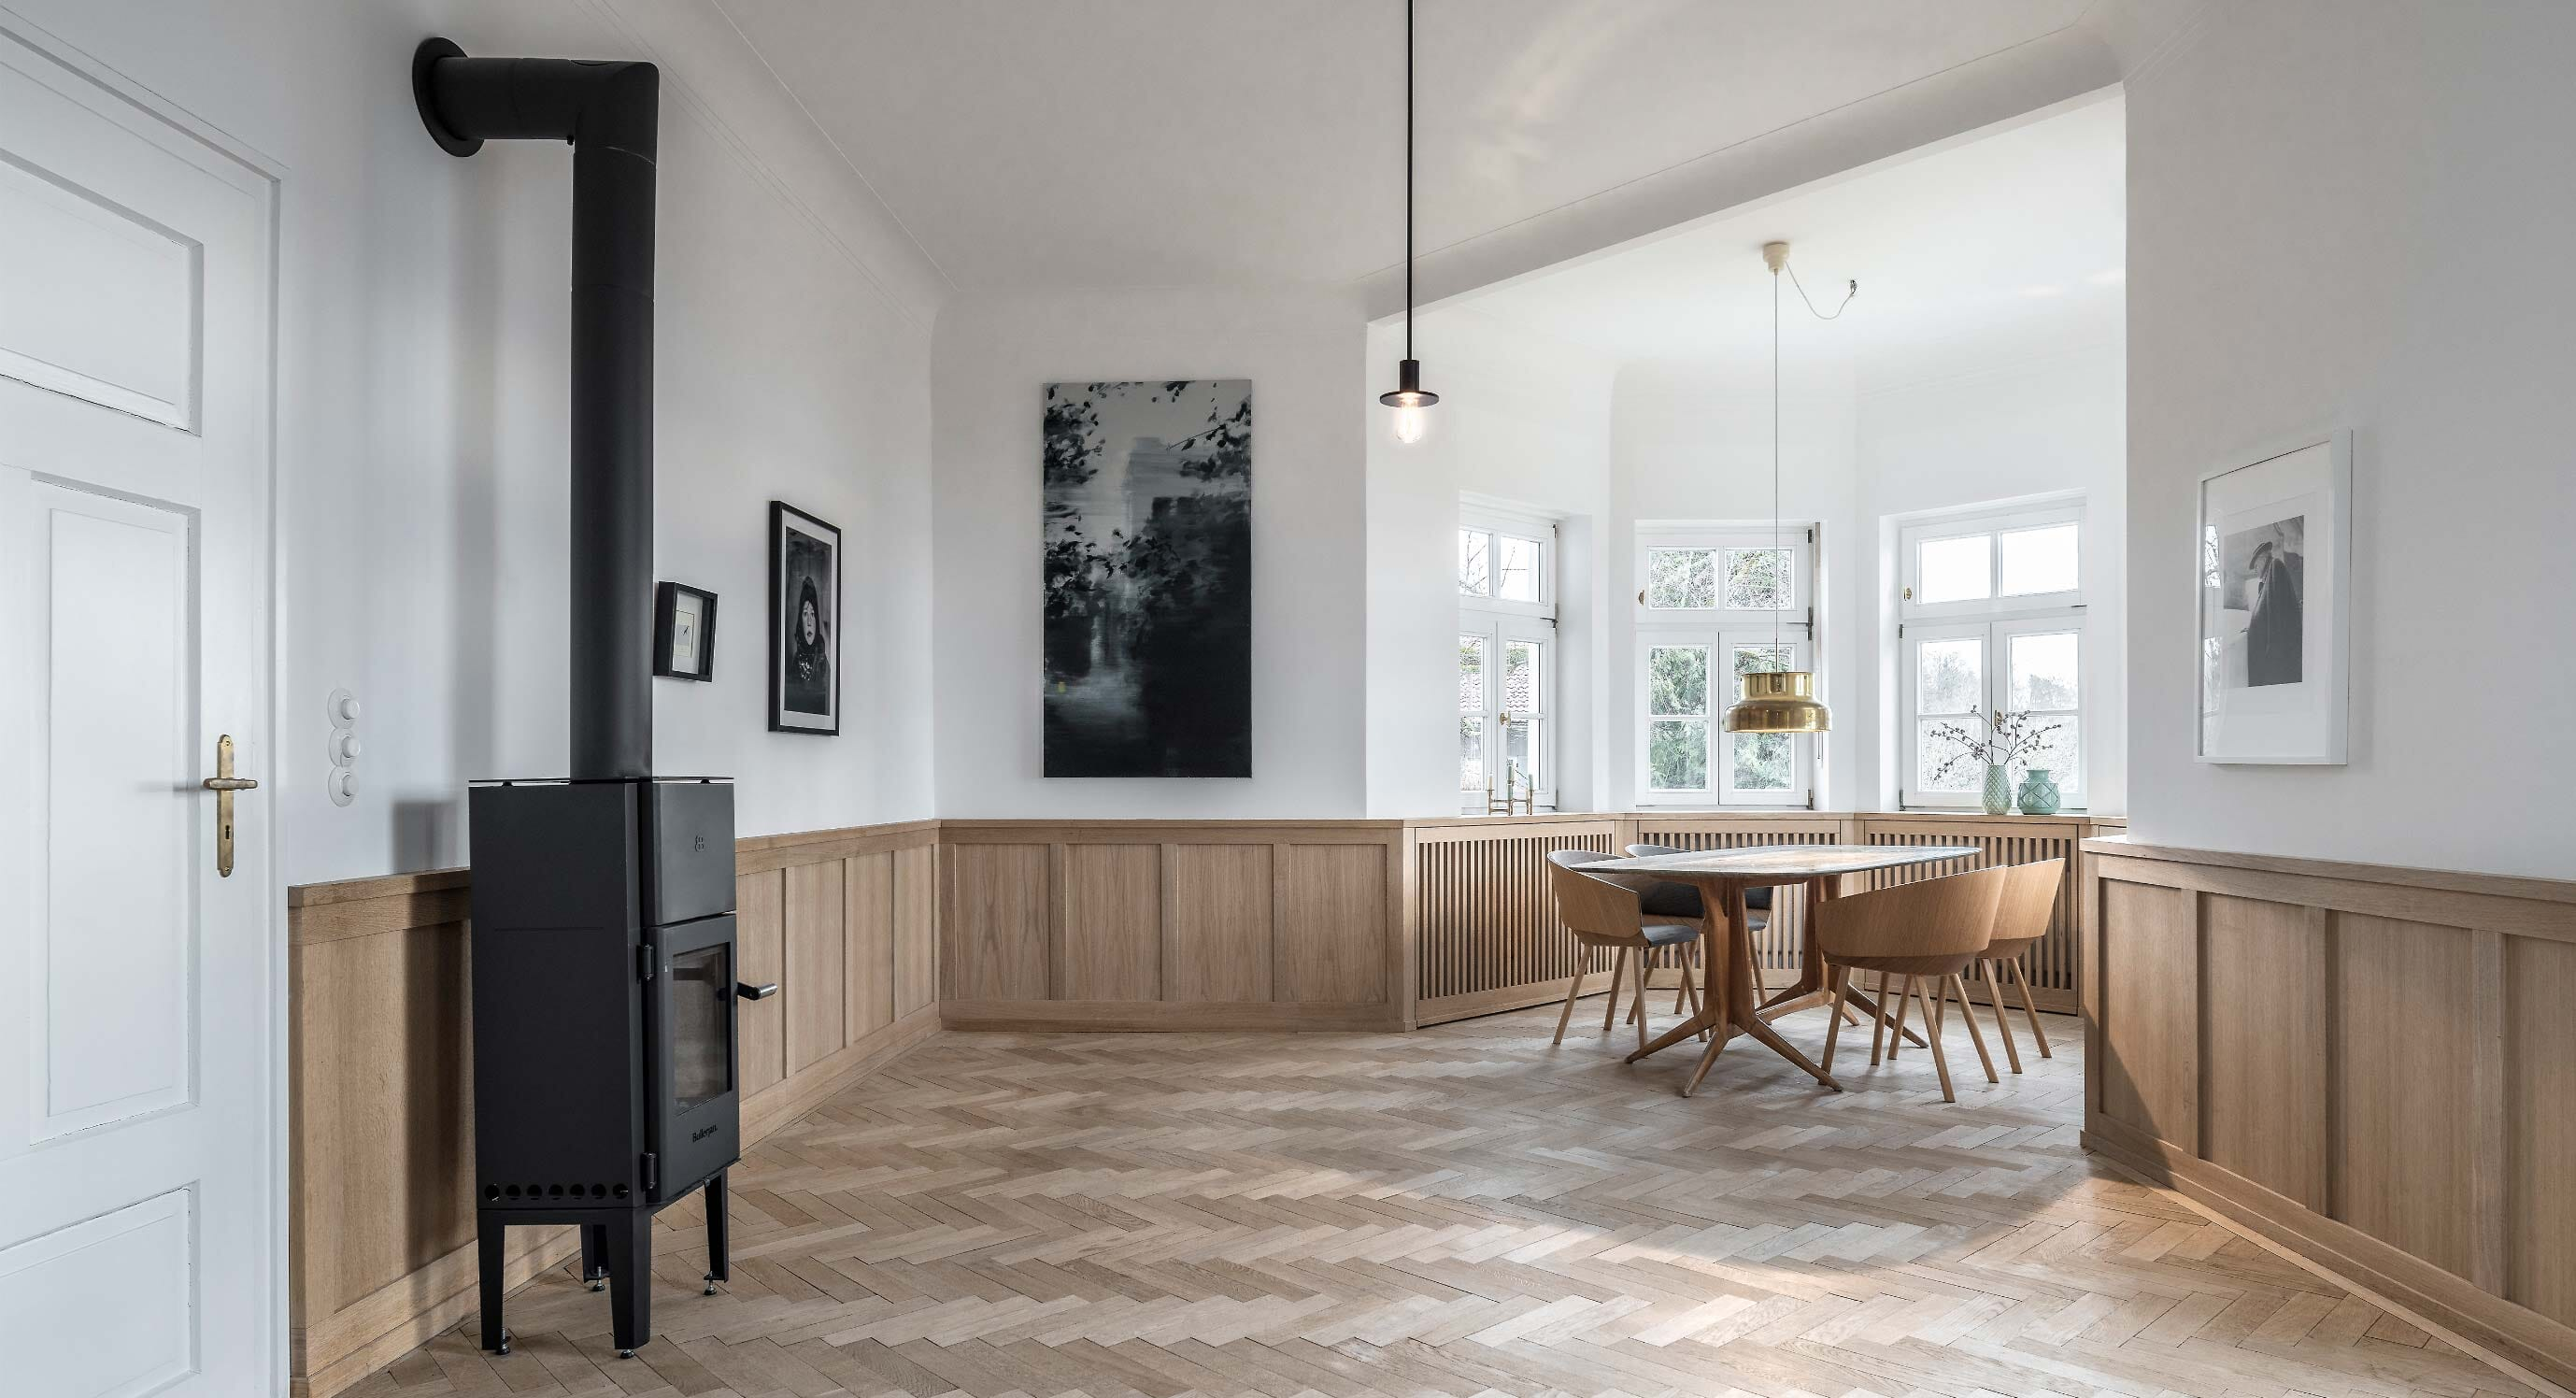 Ostufer Apartment By Holzrausch Is A Lesson In Modern Living